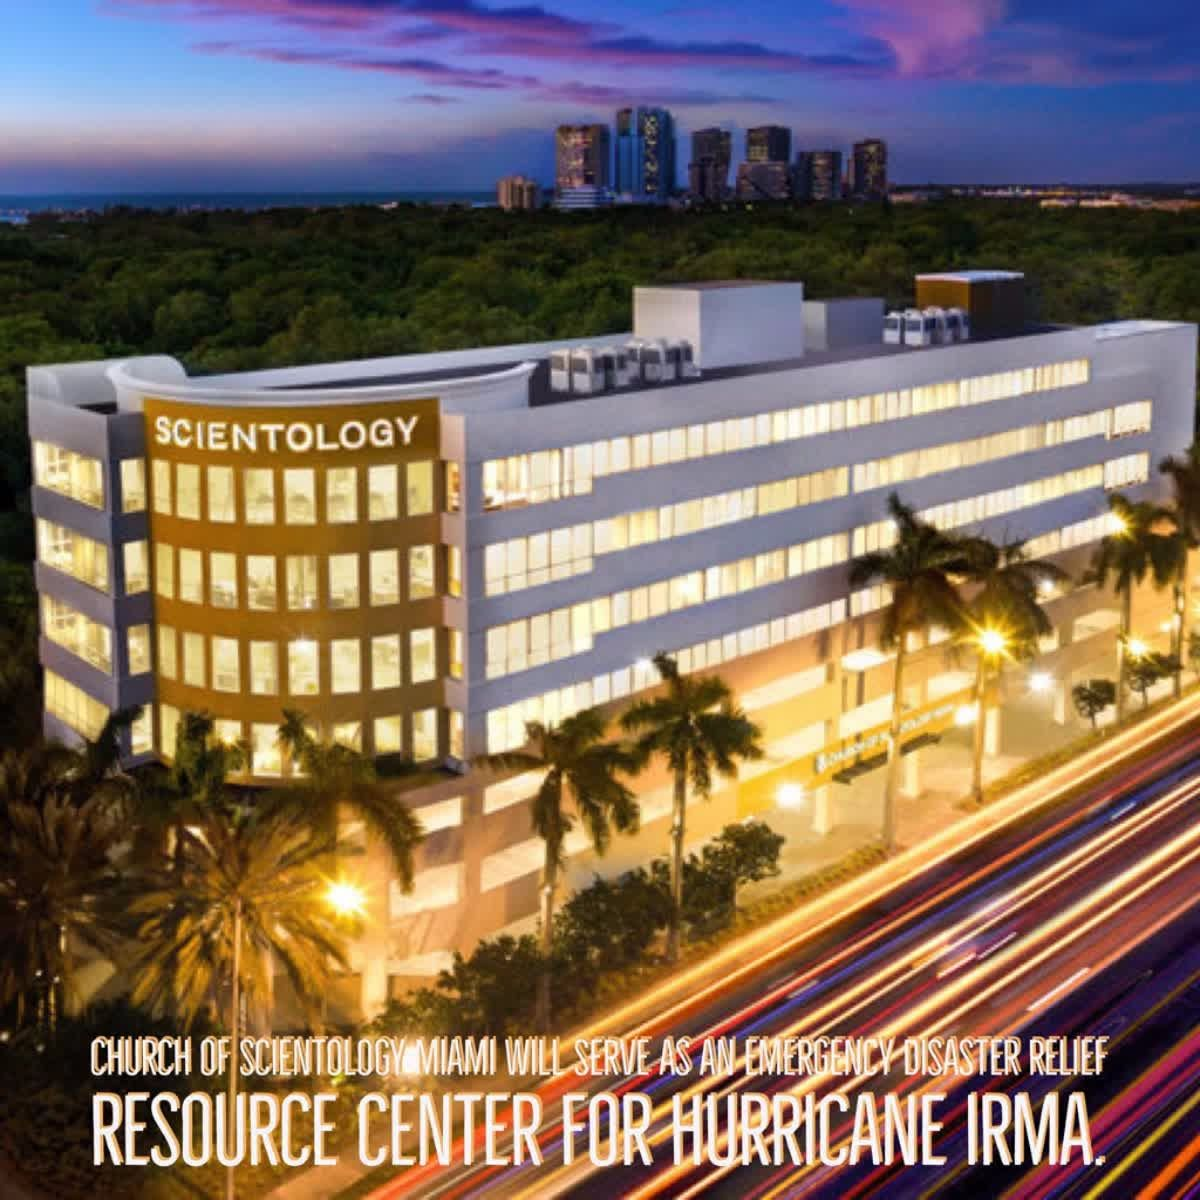 Scientology Miami Media Advisory How To Prepare For Hurricane Irma Get The Story On The Sc National Hurricane Center Safe Locations Church Of Scientology